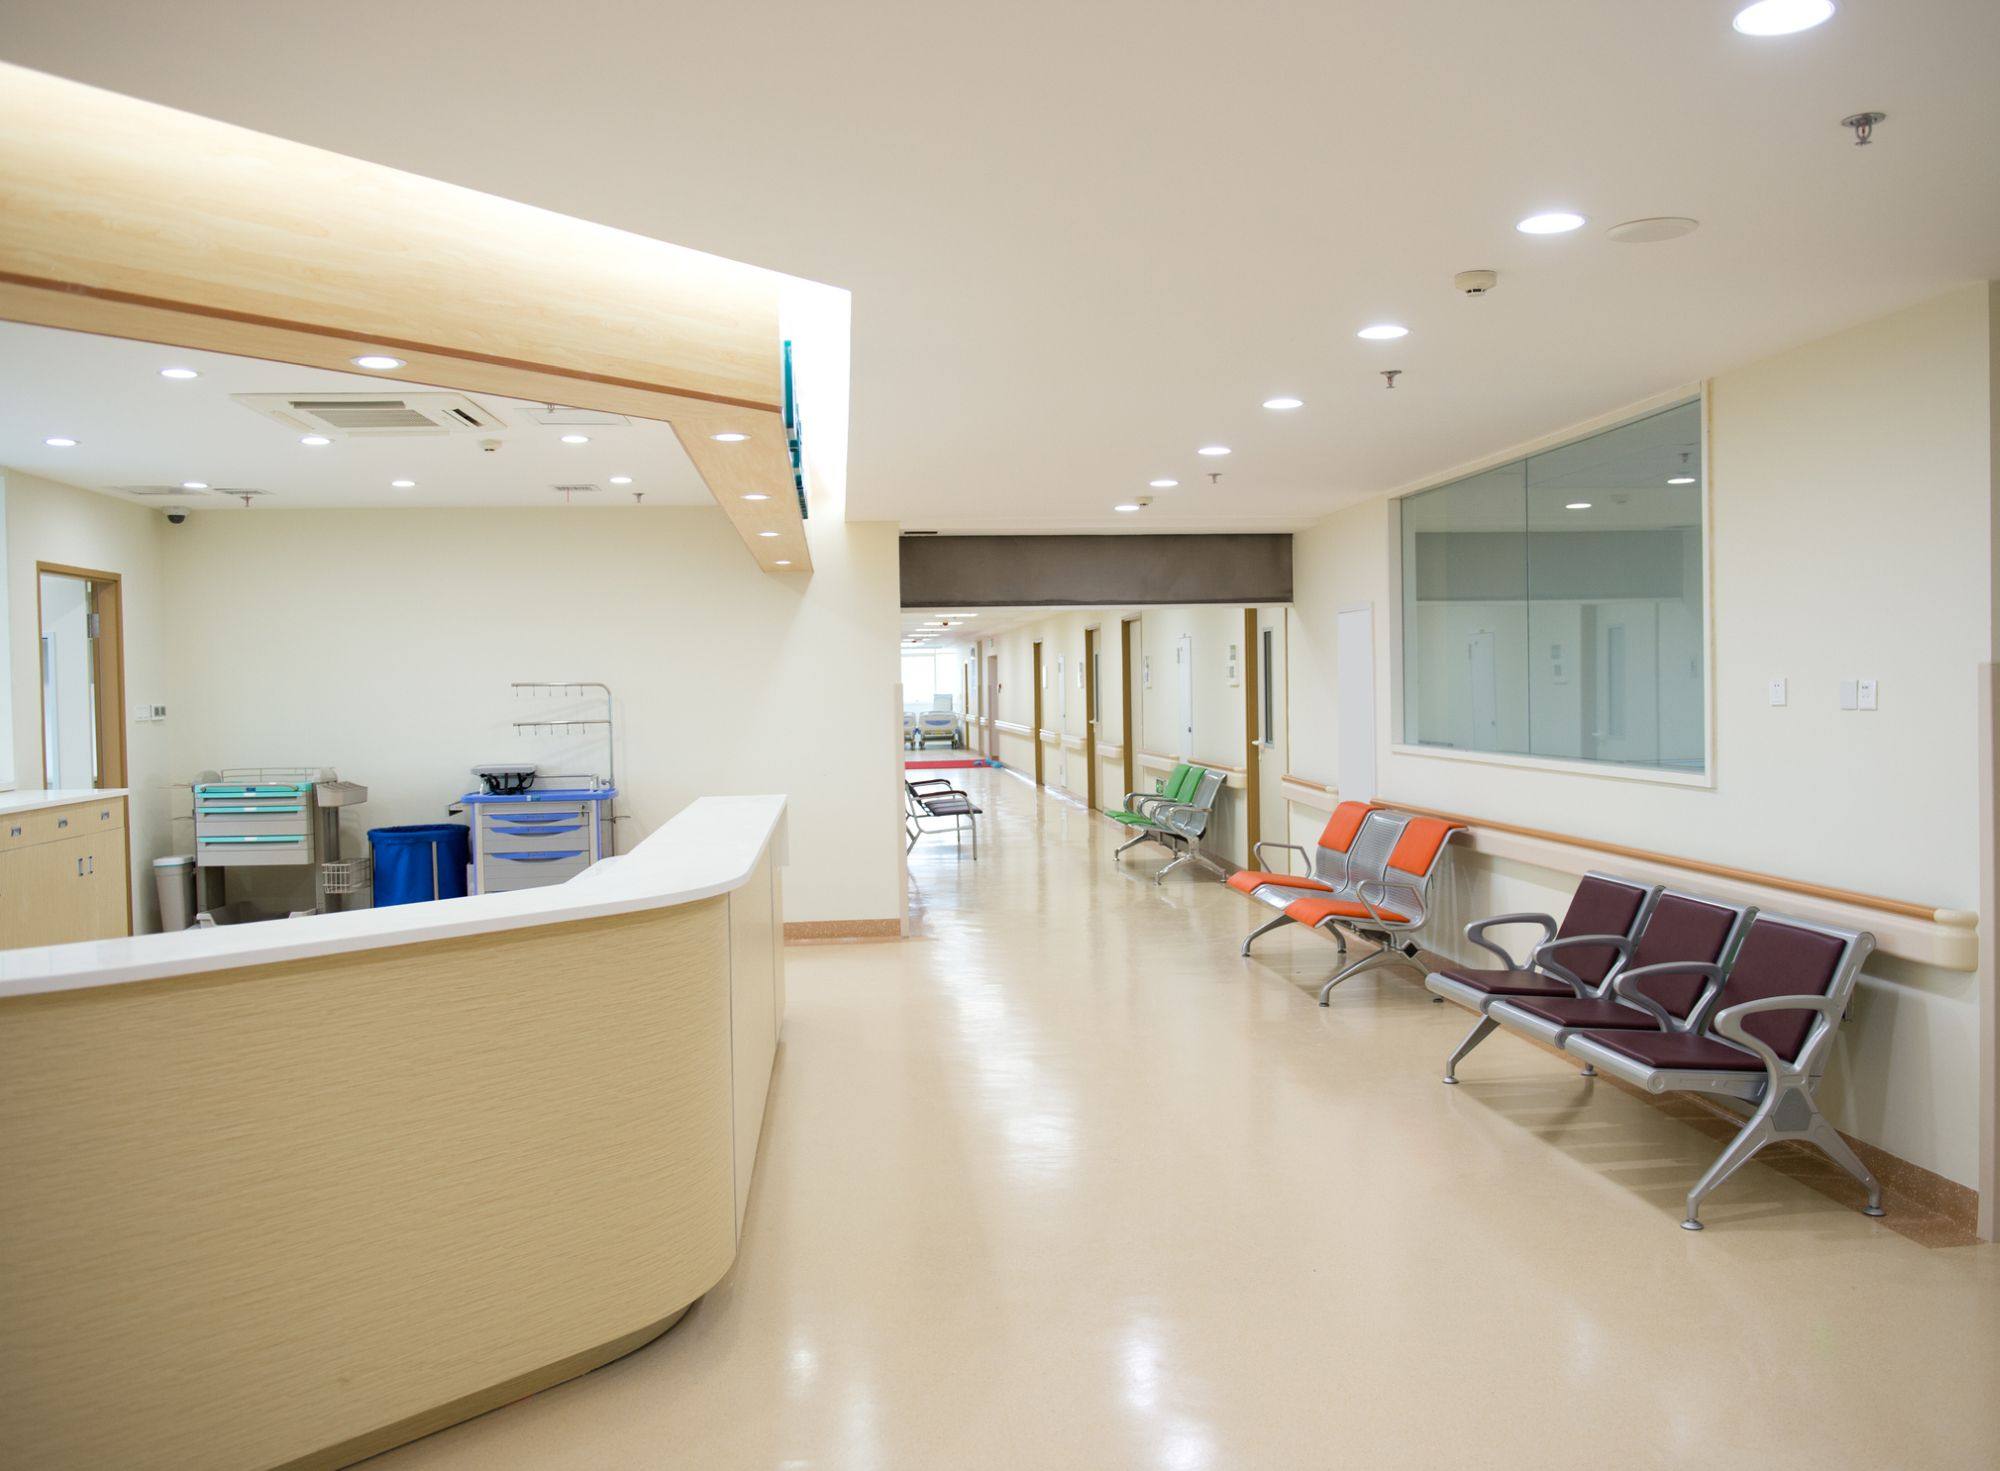 Commercial Cleaning Services for Medical, Dental and Doctors Offices